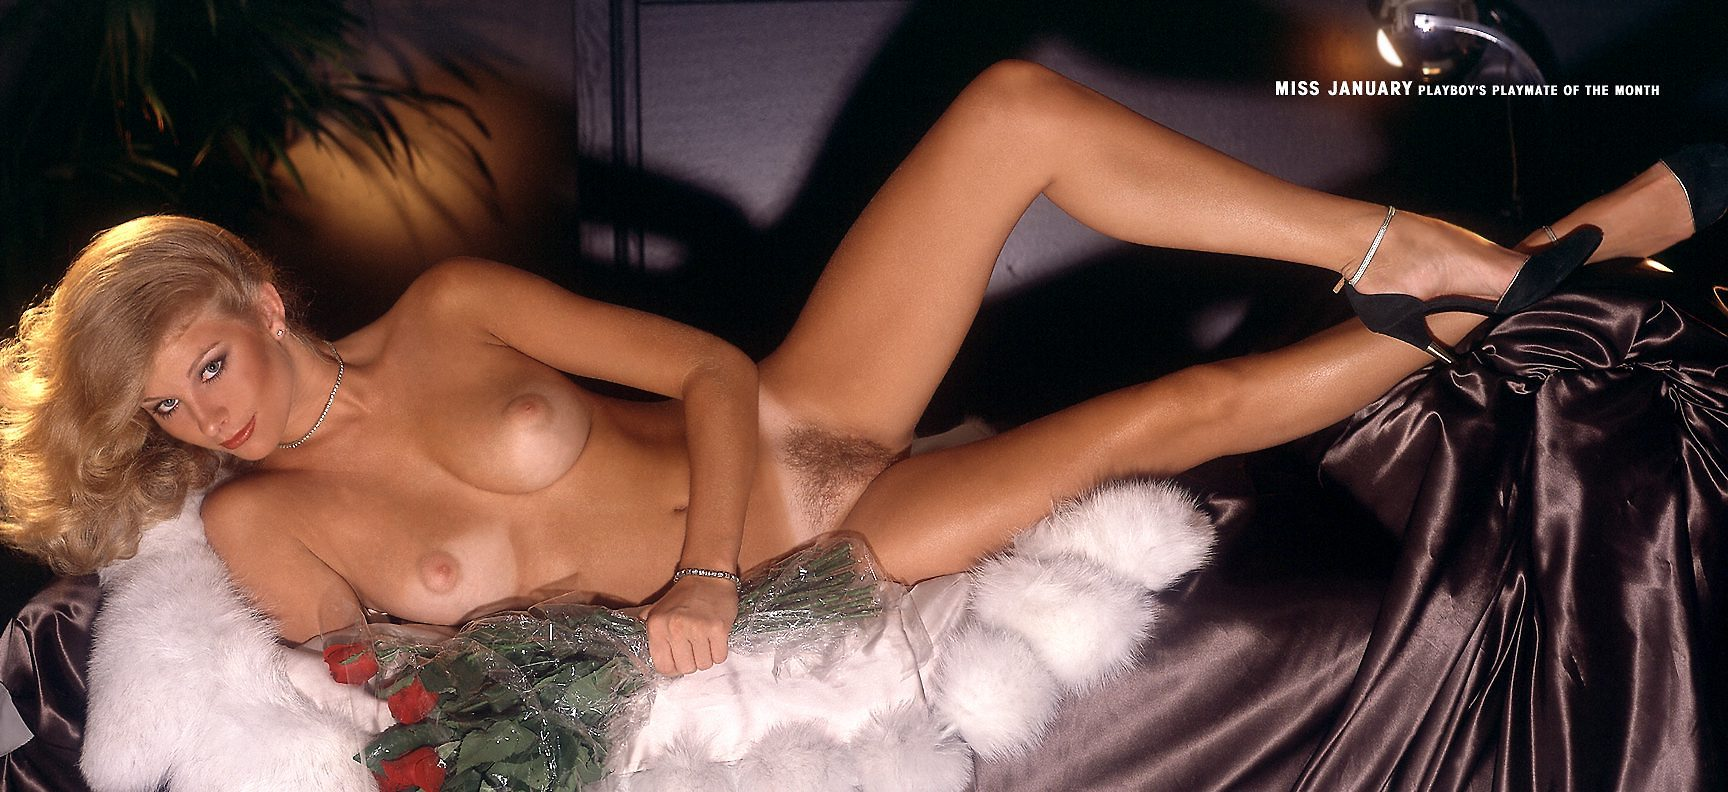 Denise richards pussy